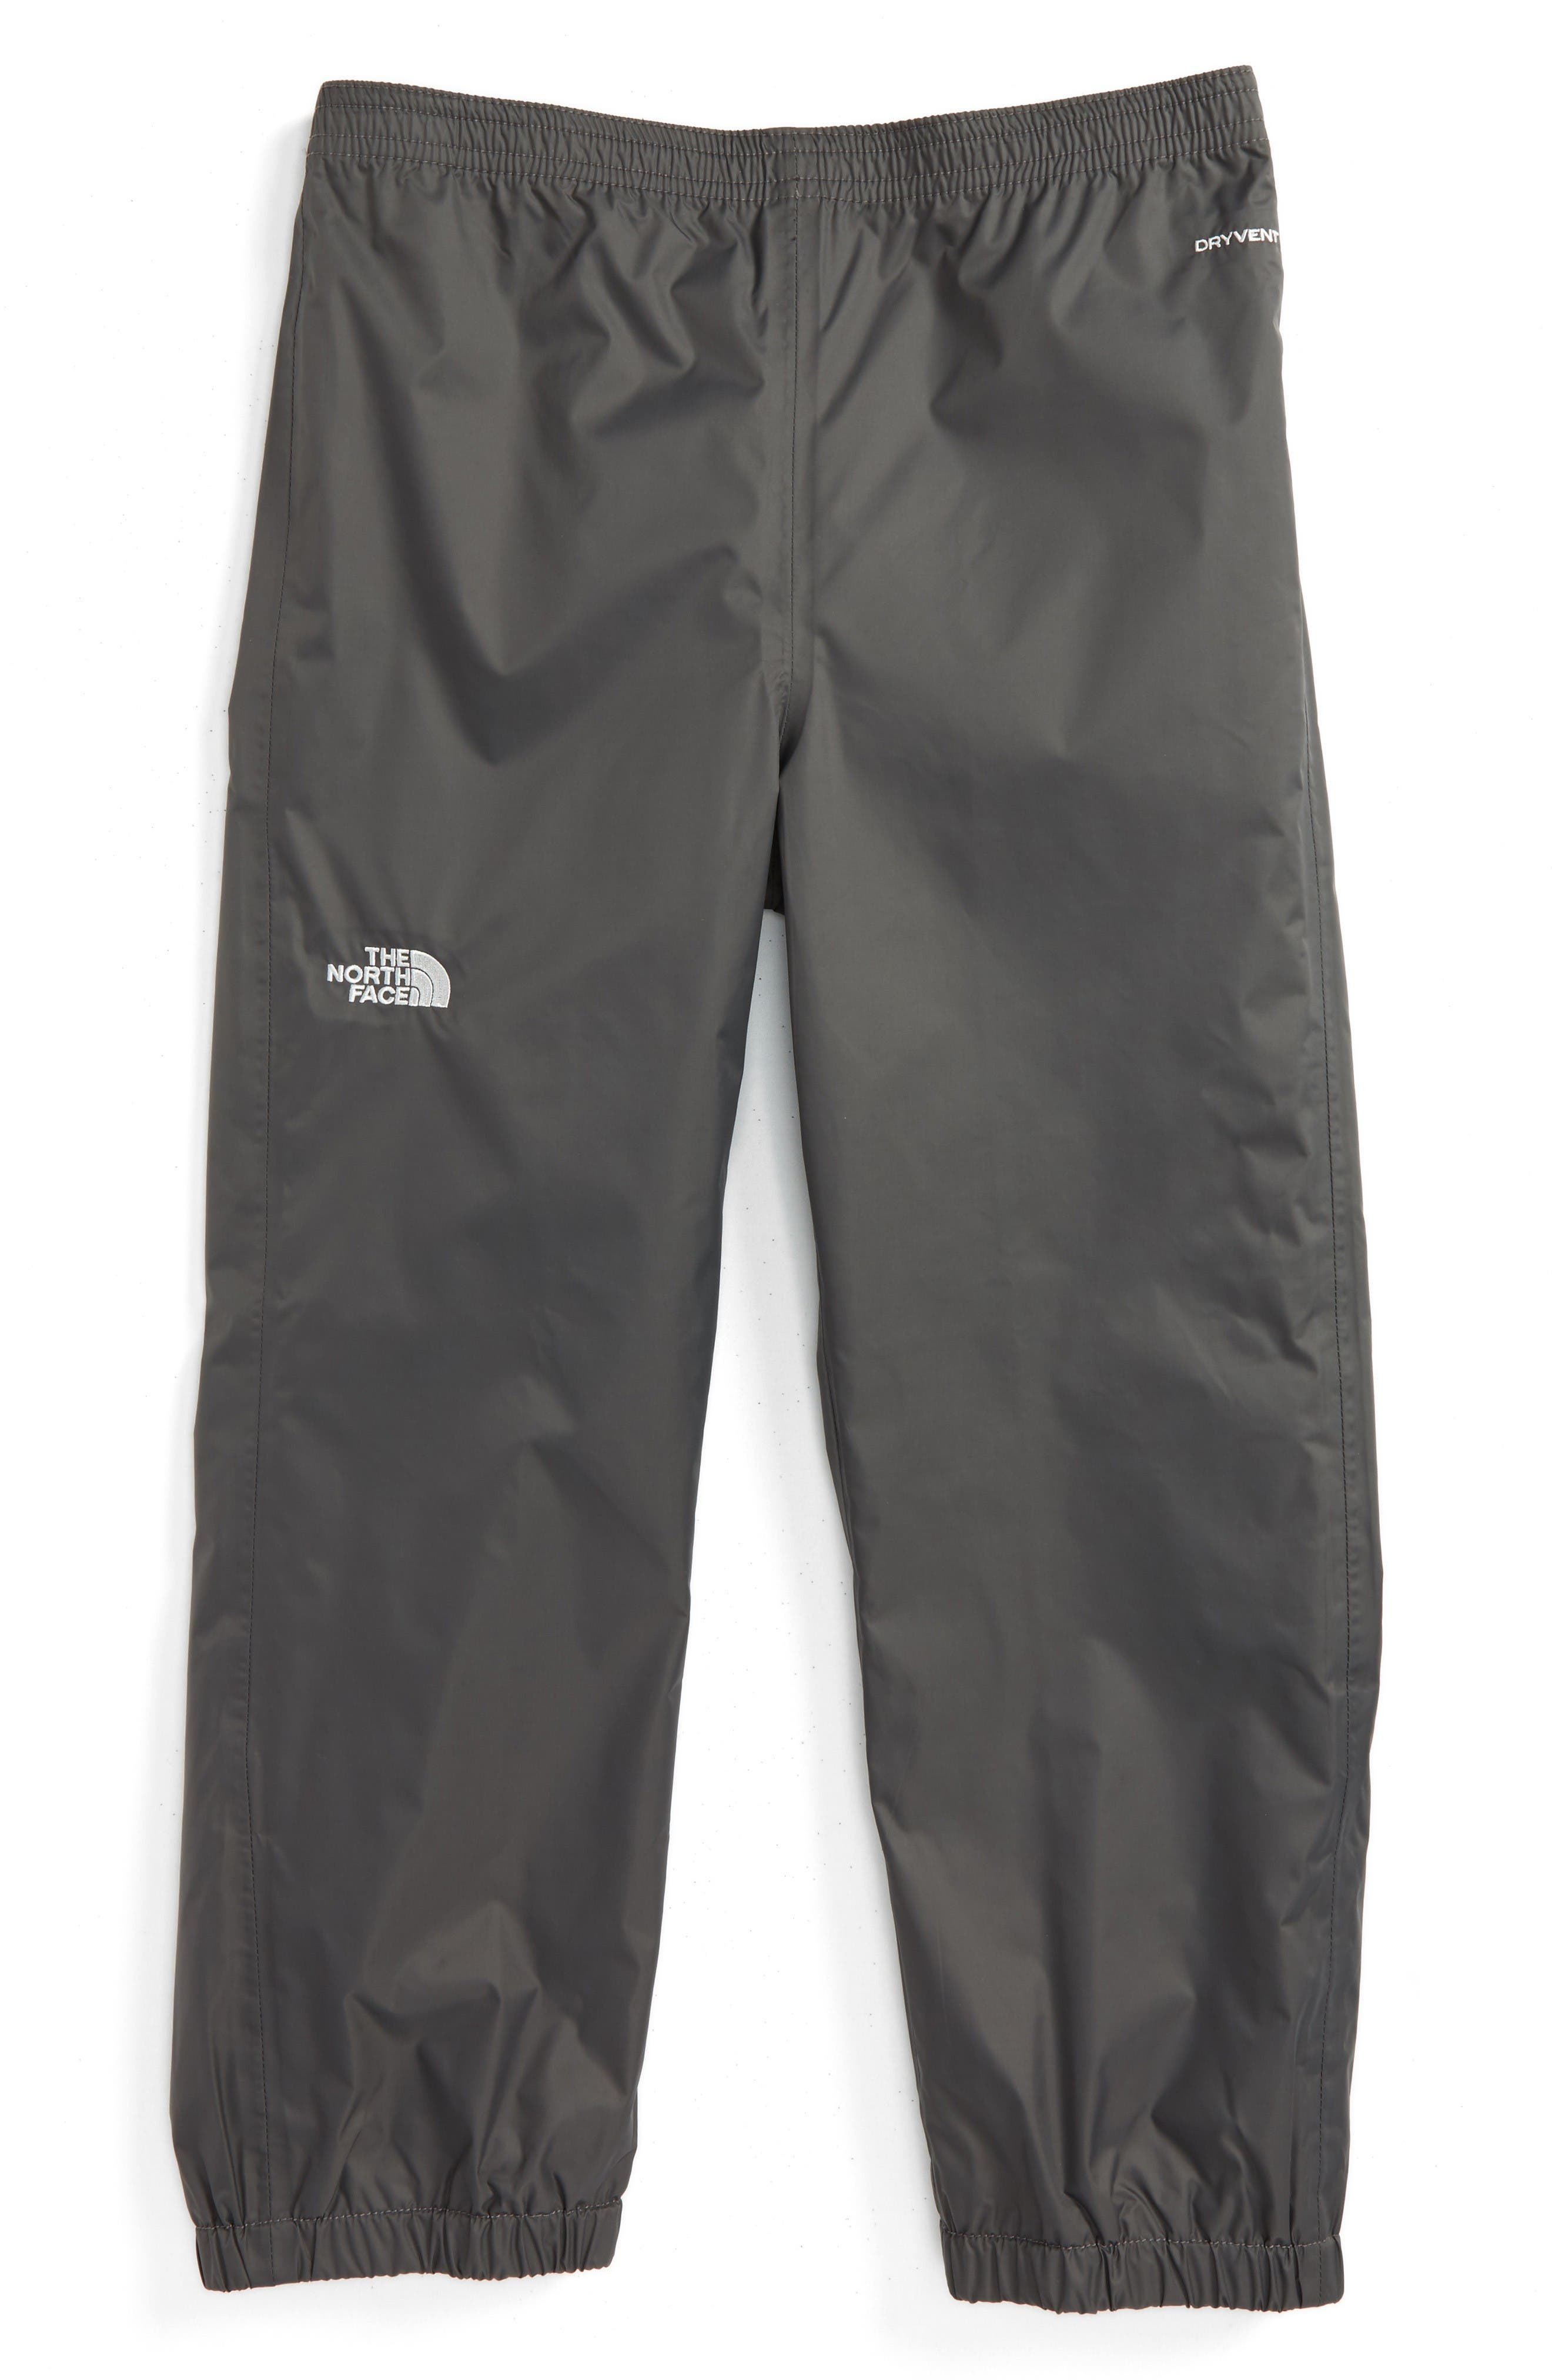 Main Image - The North Face Tailout Waterproof Pants (Toddler Boys & Little Boys)